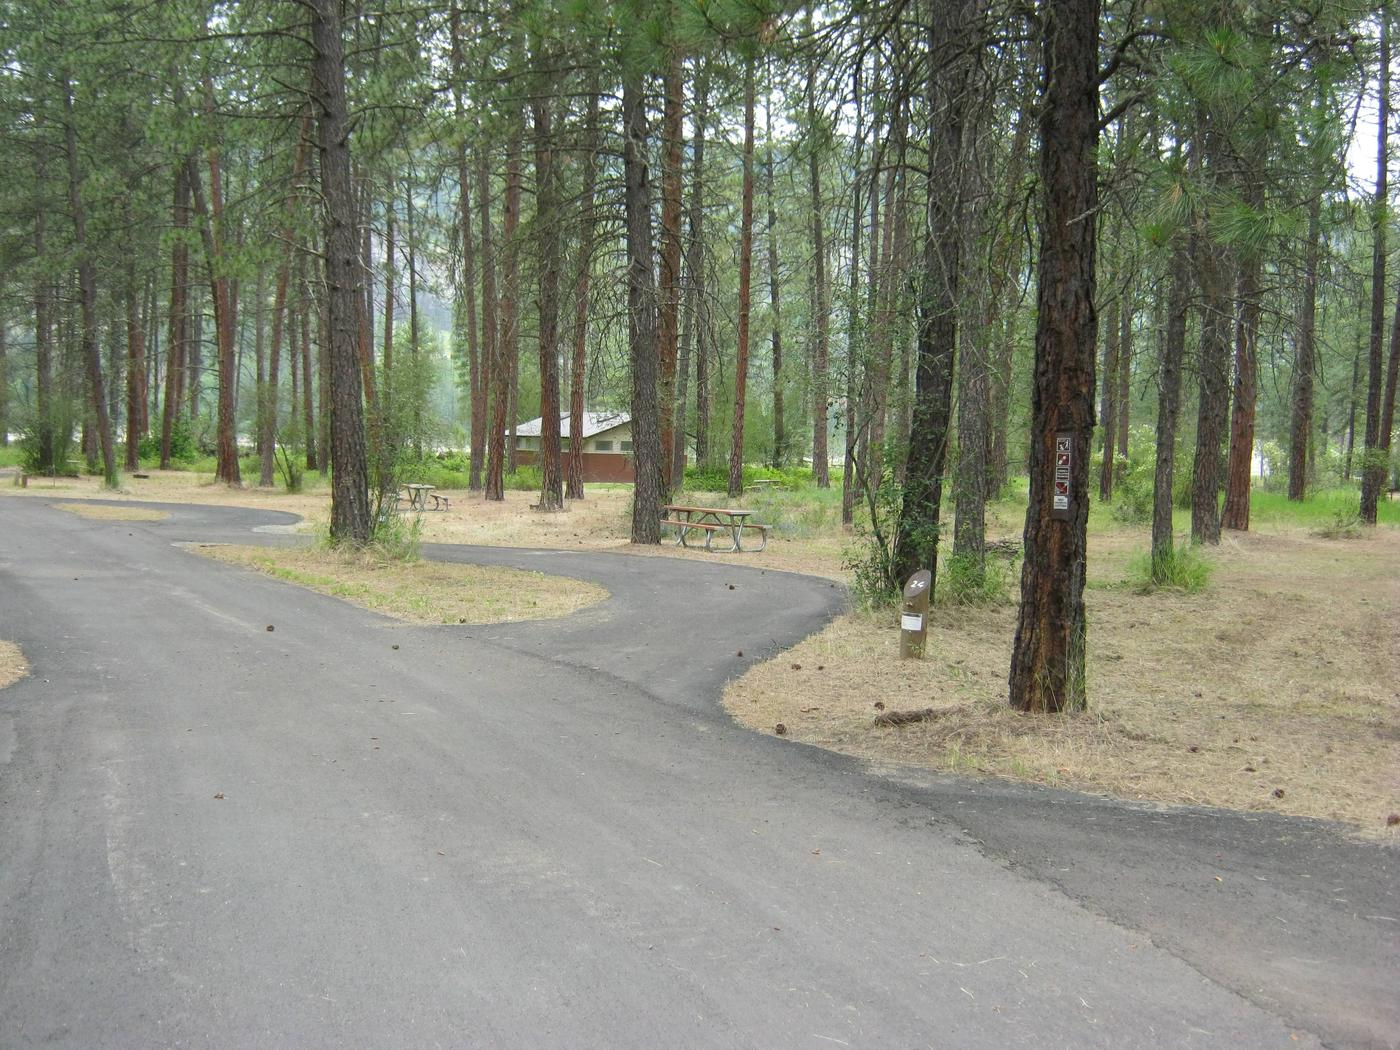 Alt view of Site 24Alternative view of site 24, Pull Through, Pine trees and comfort station in background